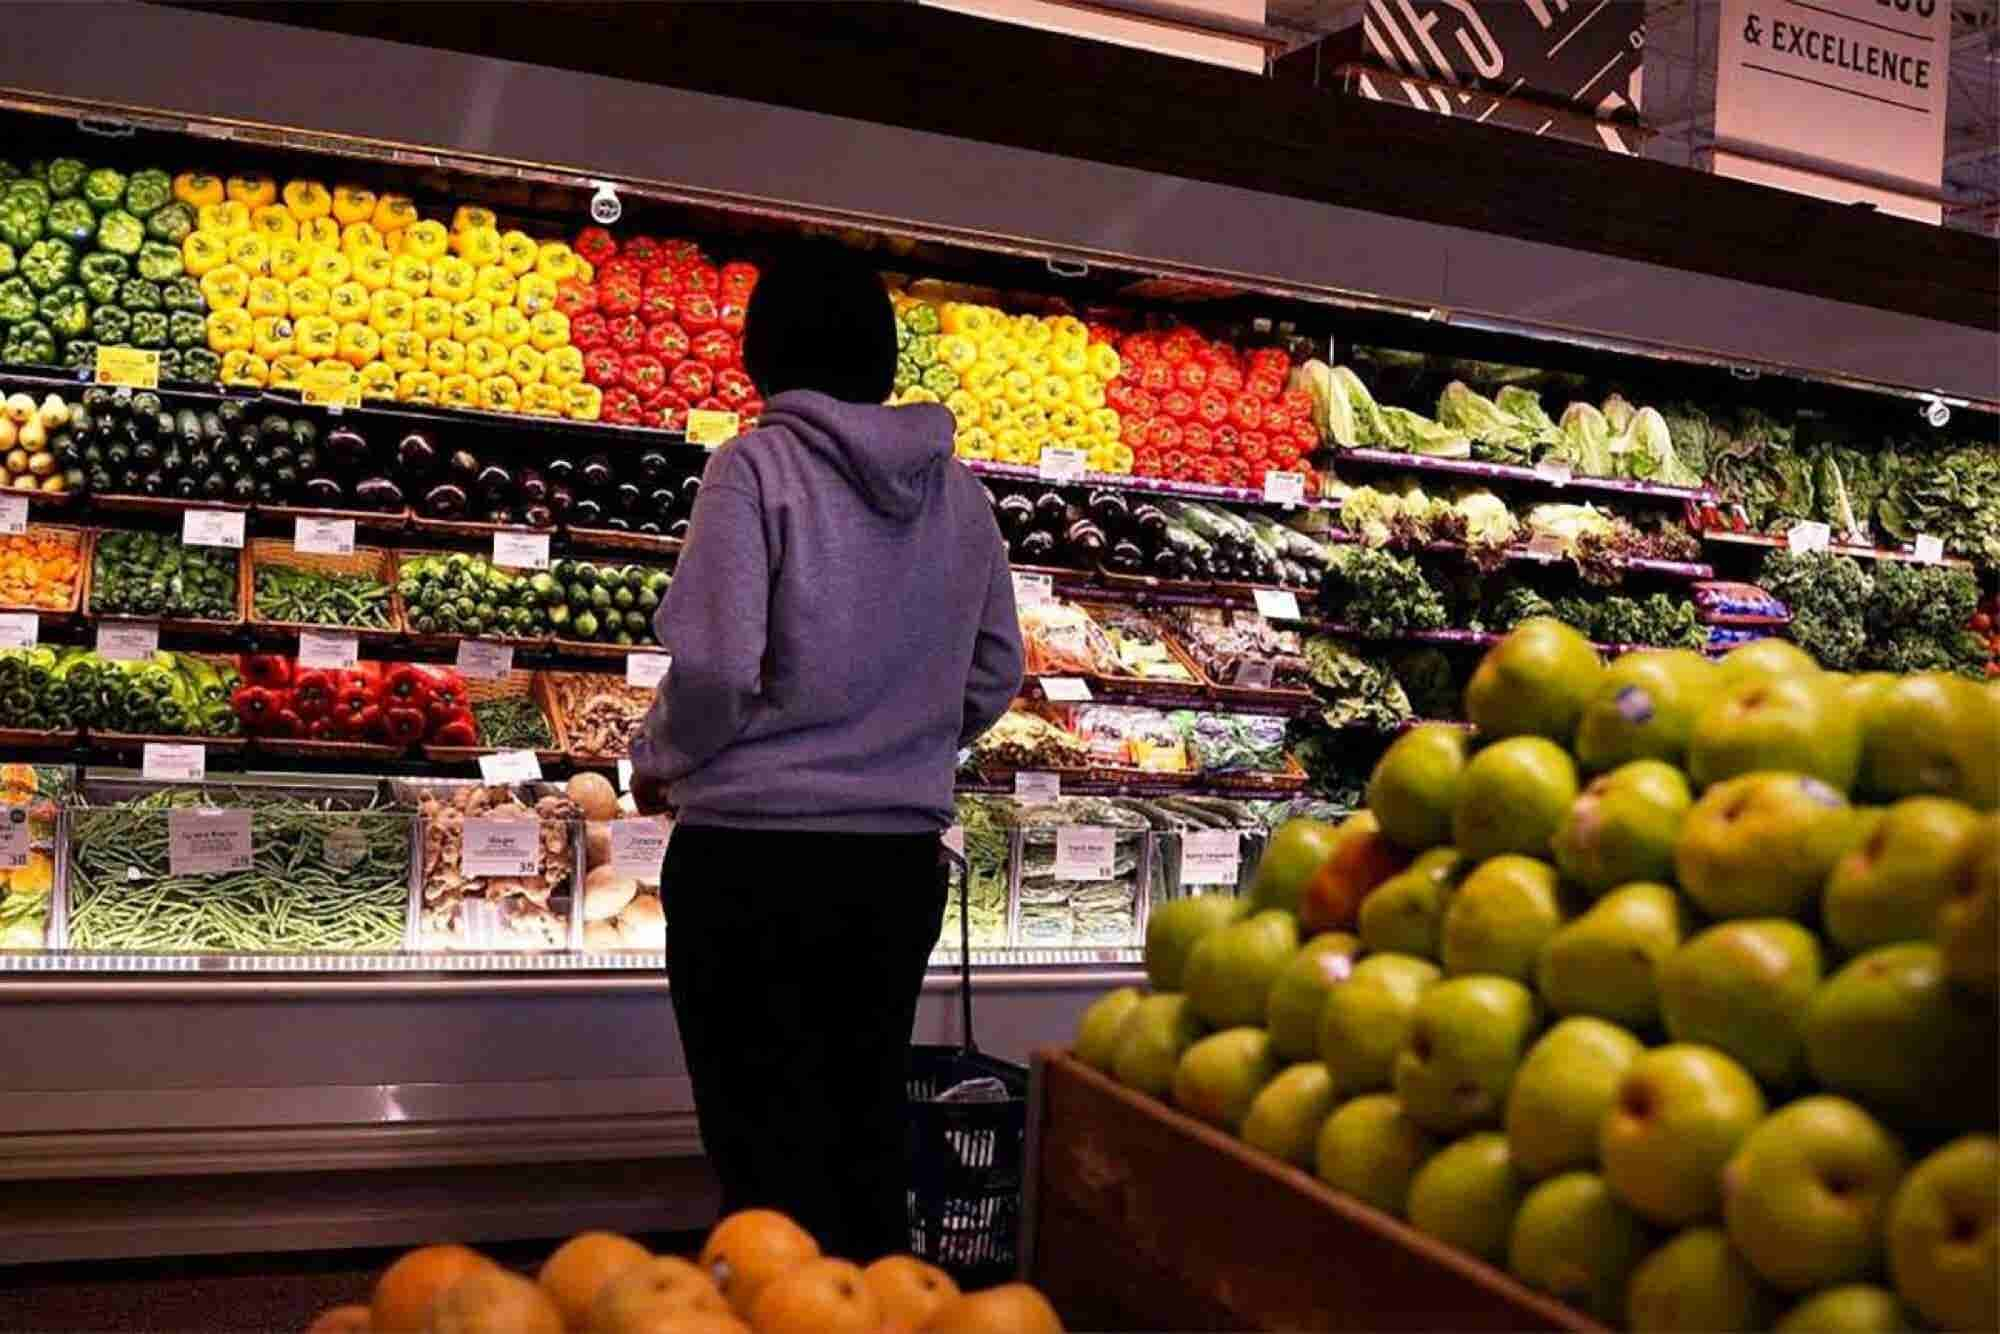 Whole Foods Just Got Slammed for Its 'World's Healthiest' Claim